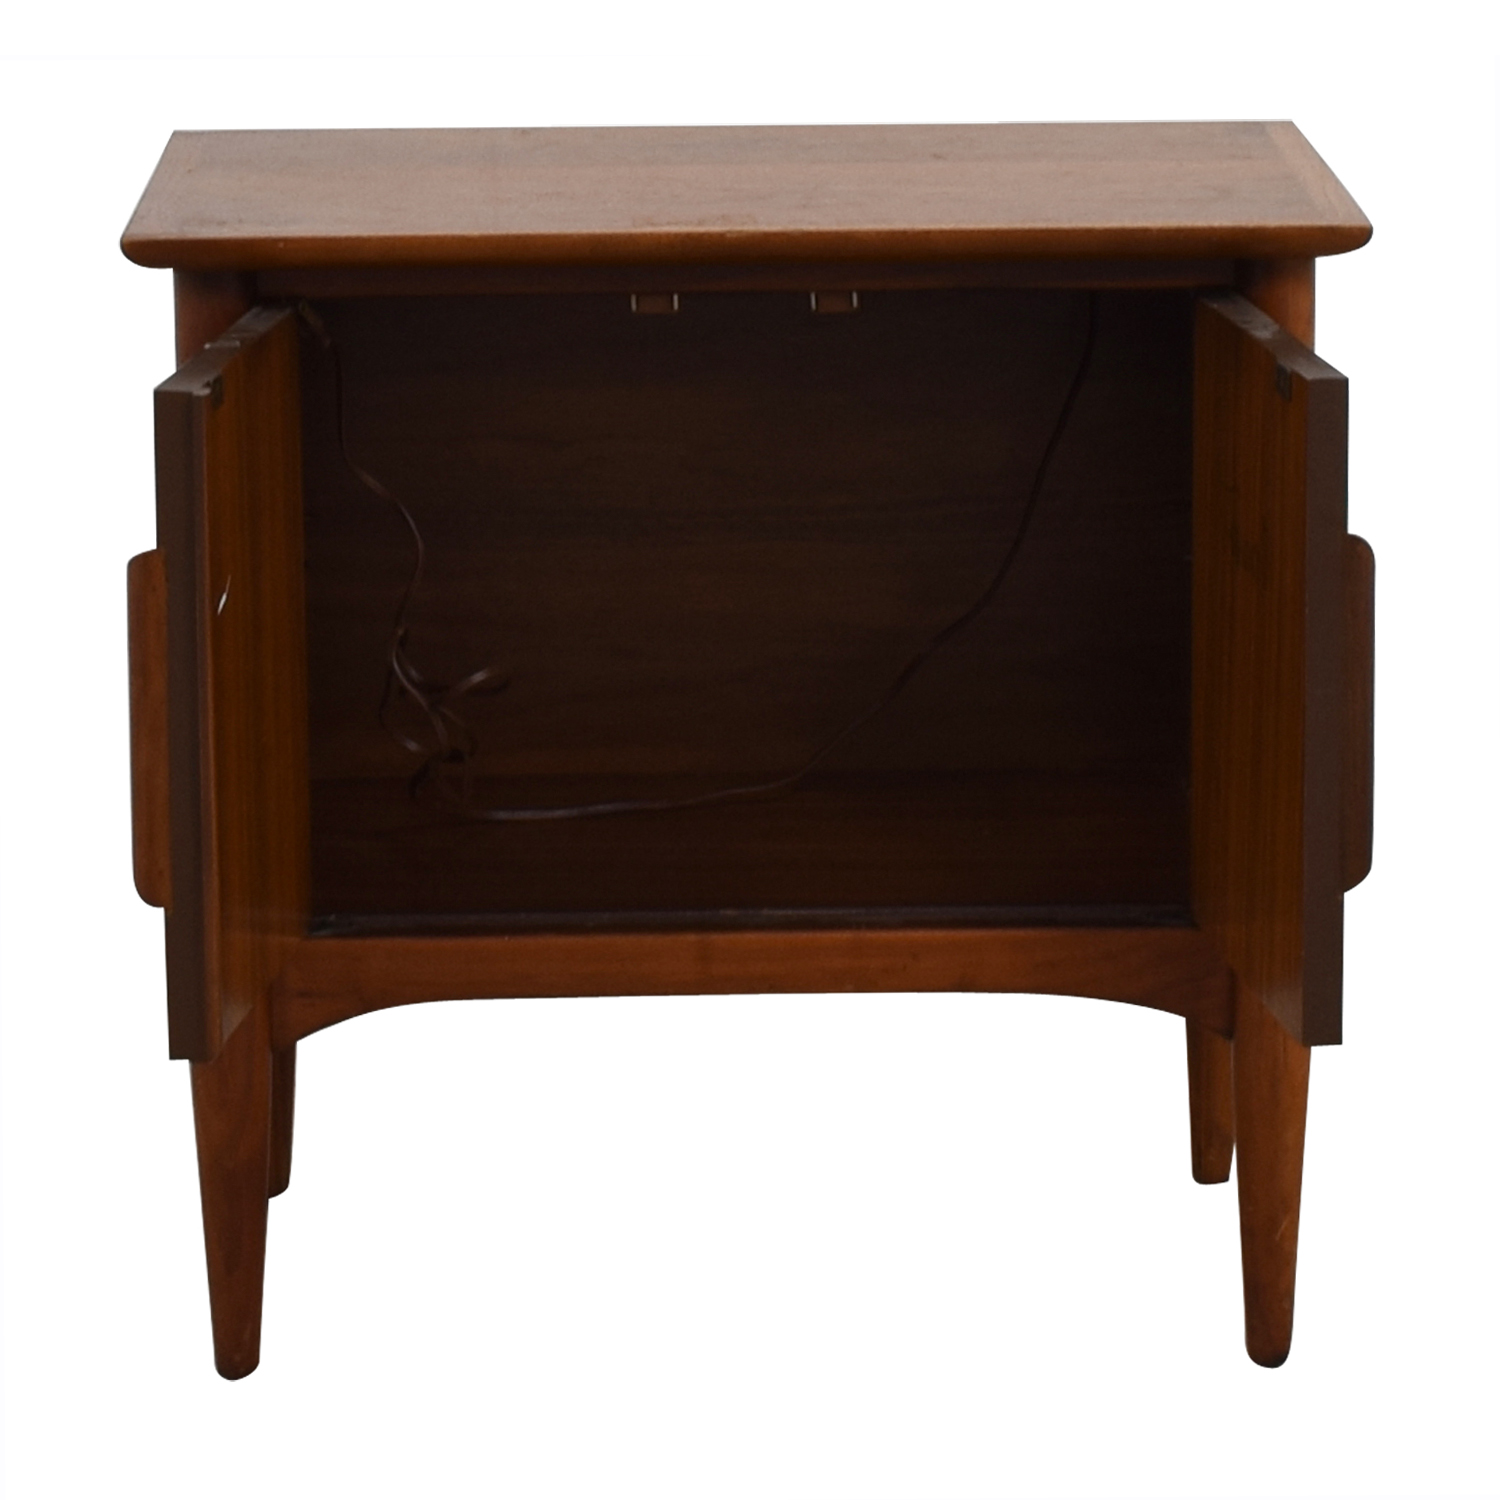 buy  Vintage Wood Accent Table online